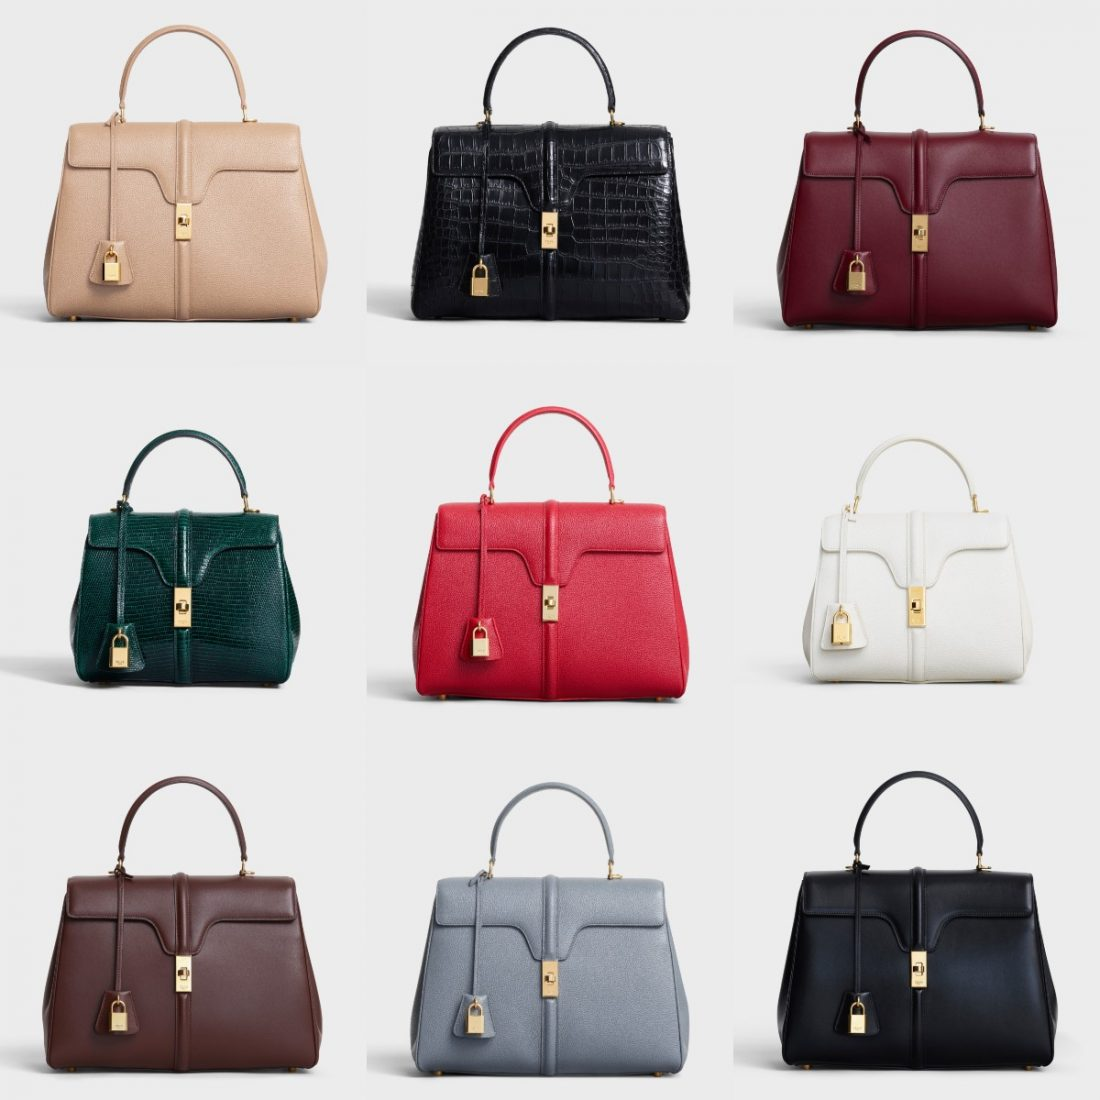 721ebc0626388 Hedi Slimane s vision for Celine as seen through his debut bag collection(s)